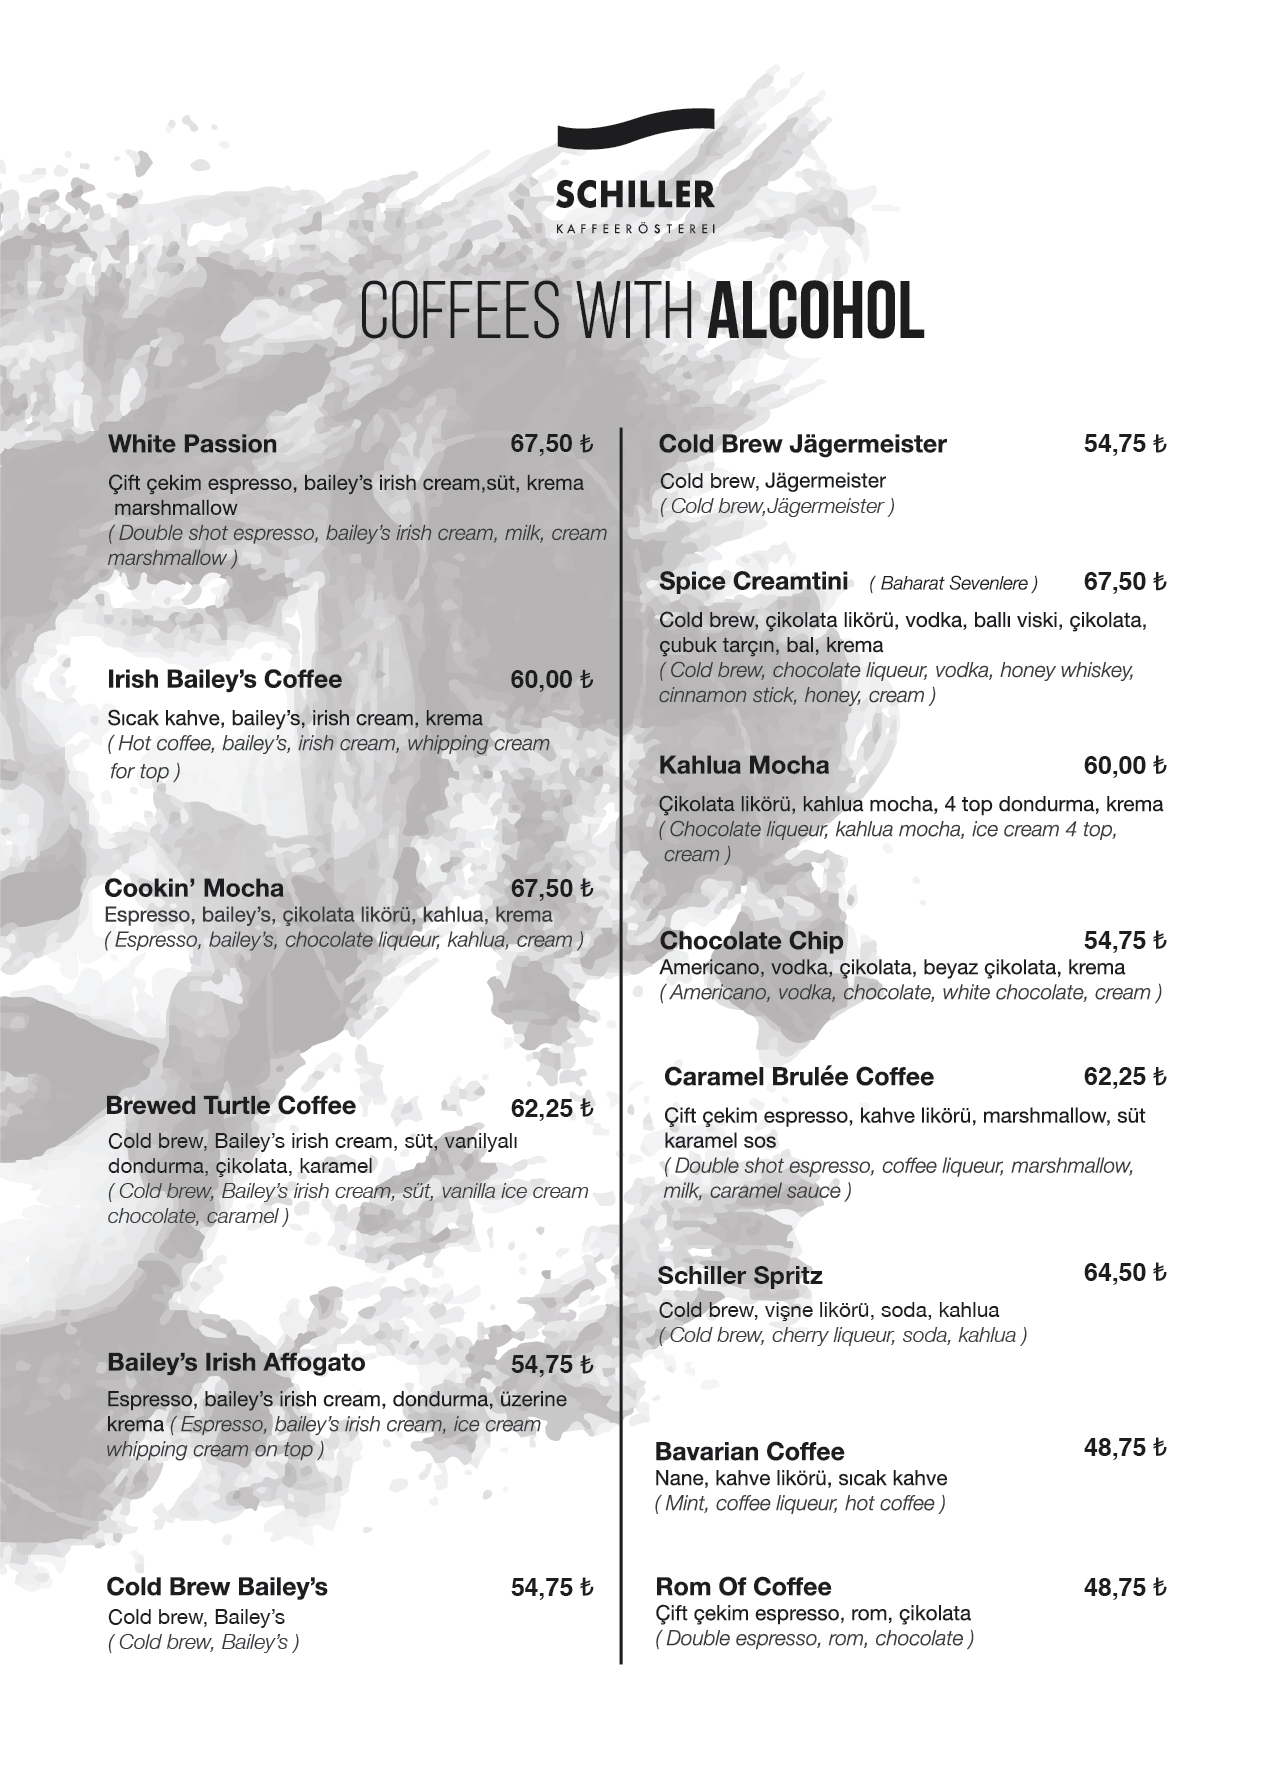 Coffees with Alcohol